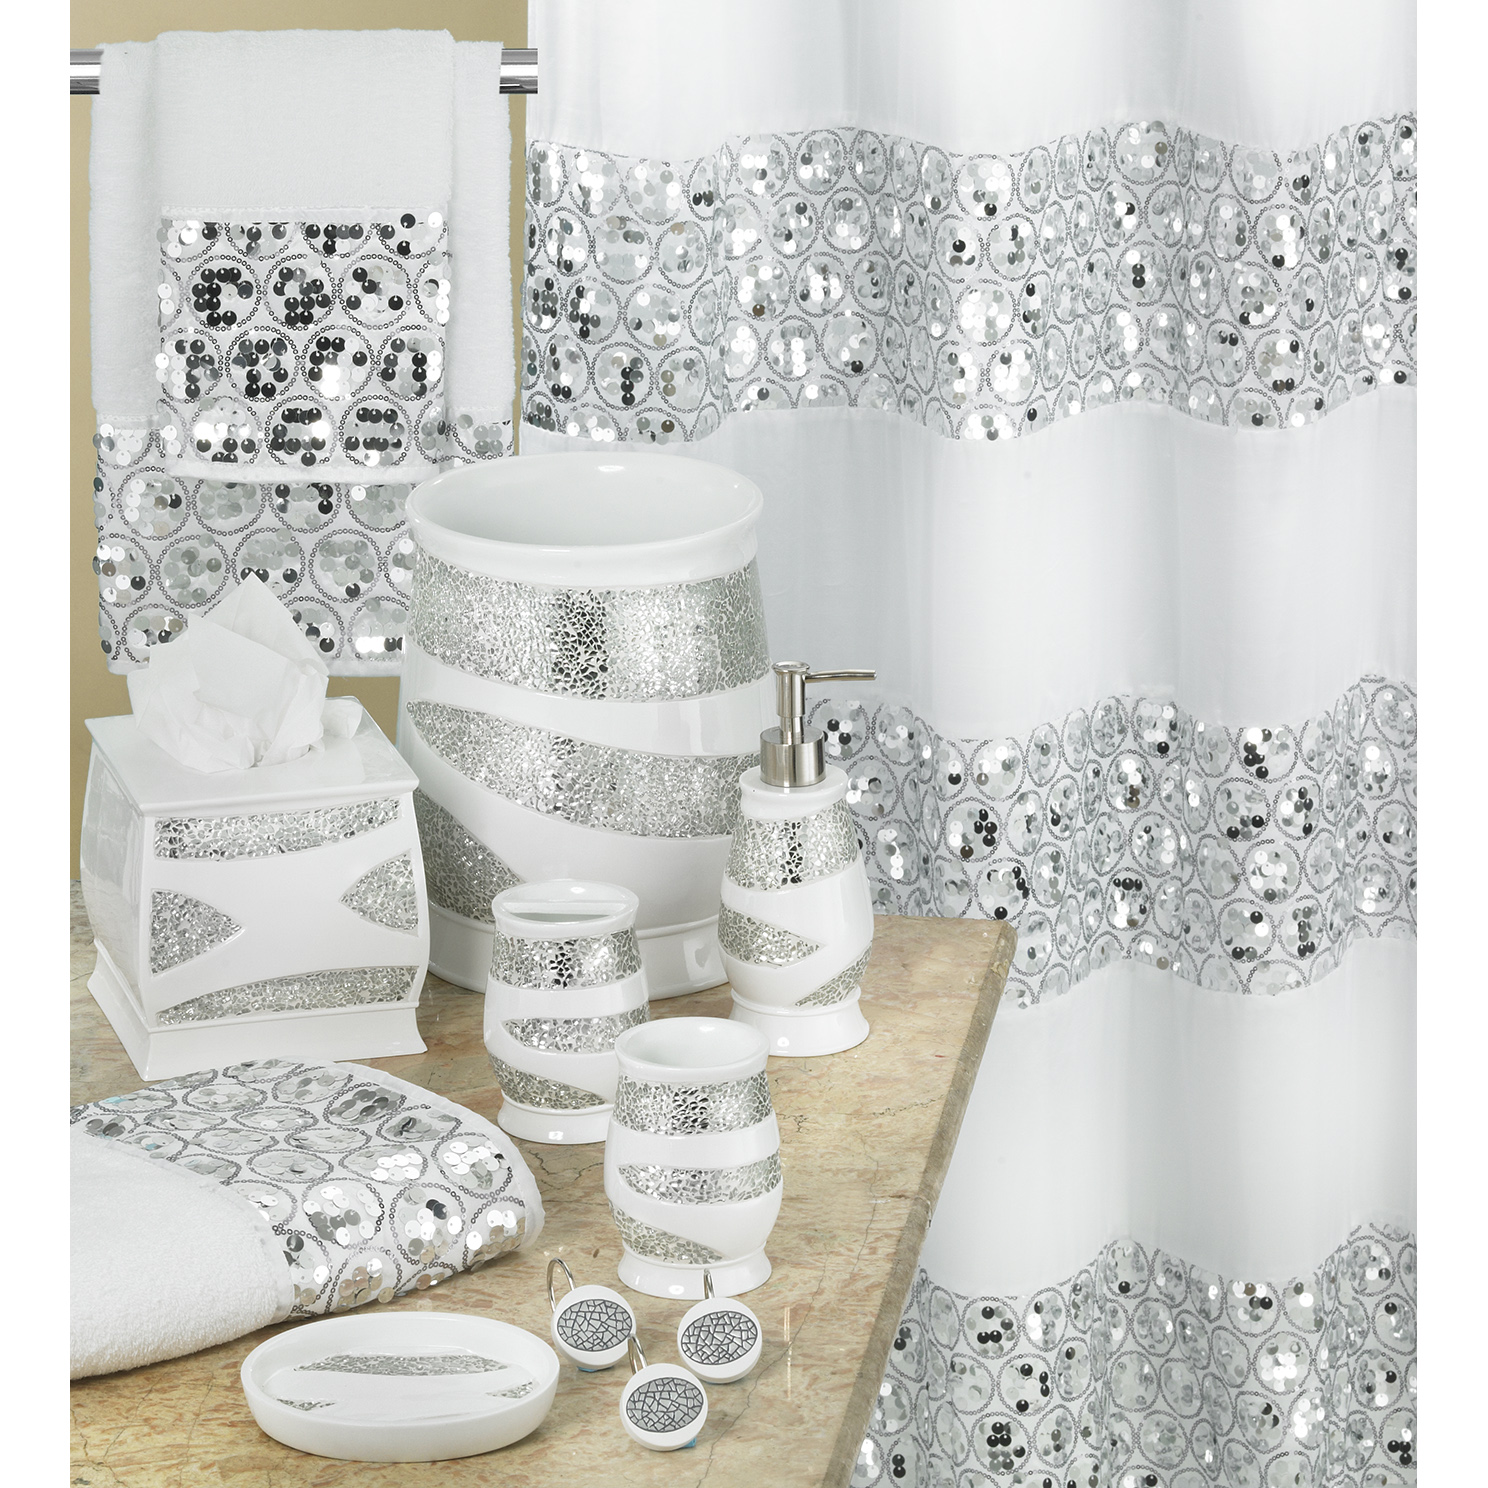 Shower Curtains And Matching Window Treatments